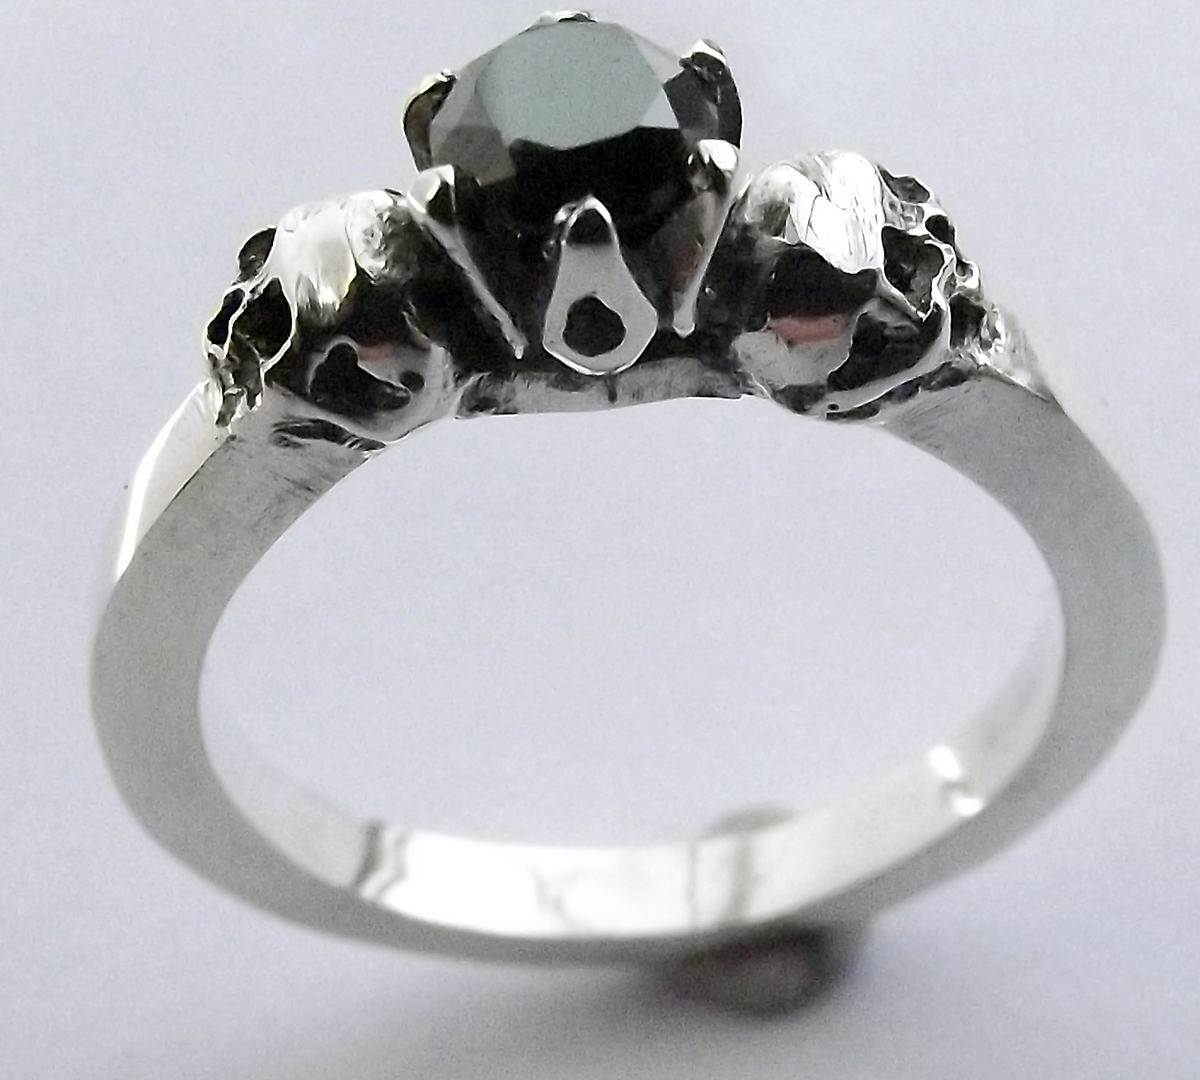 Skull Ring made by Dazzling Jewellers (16)